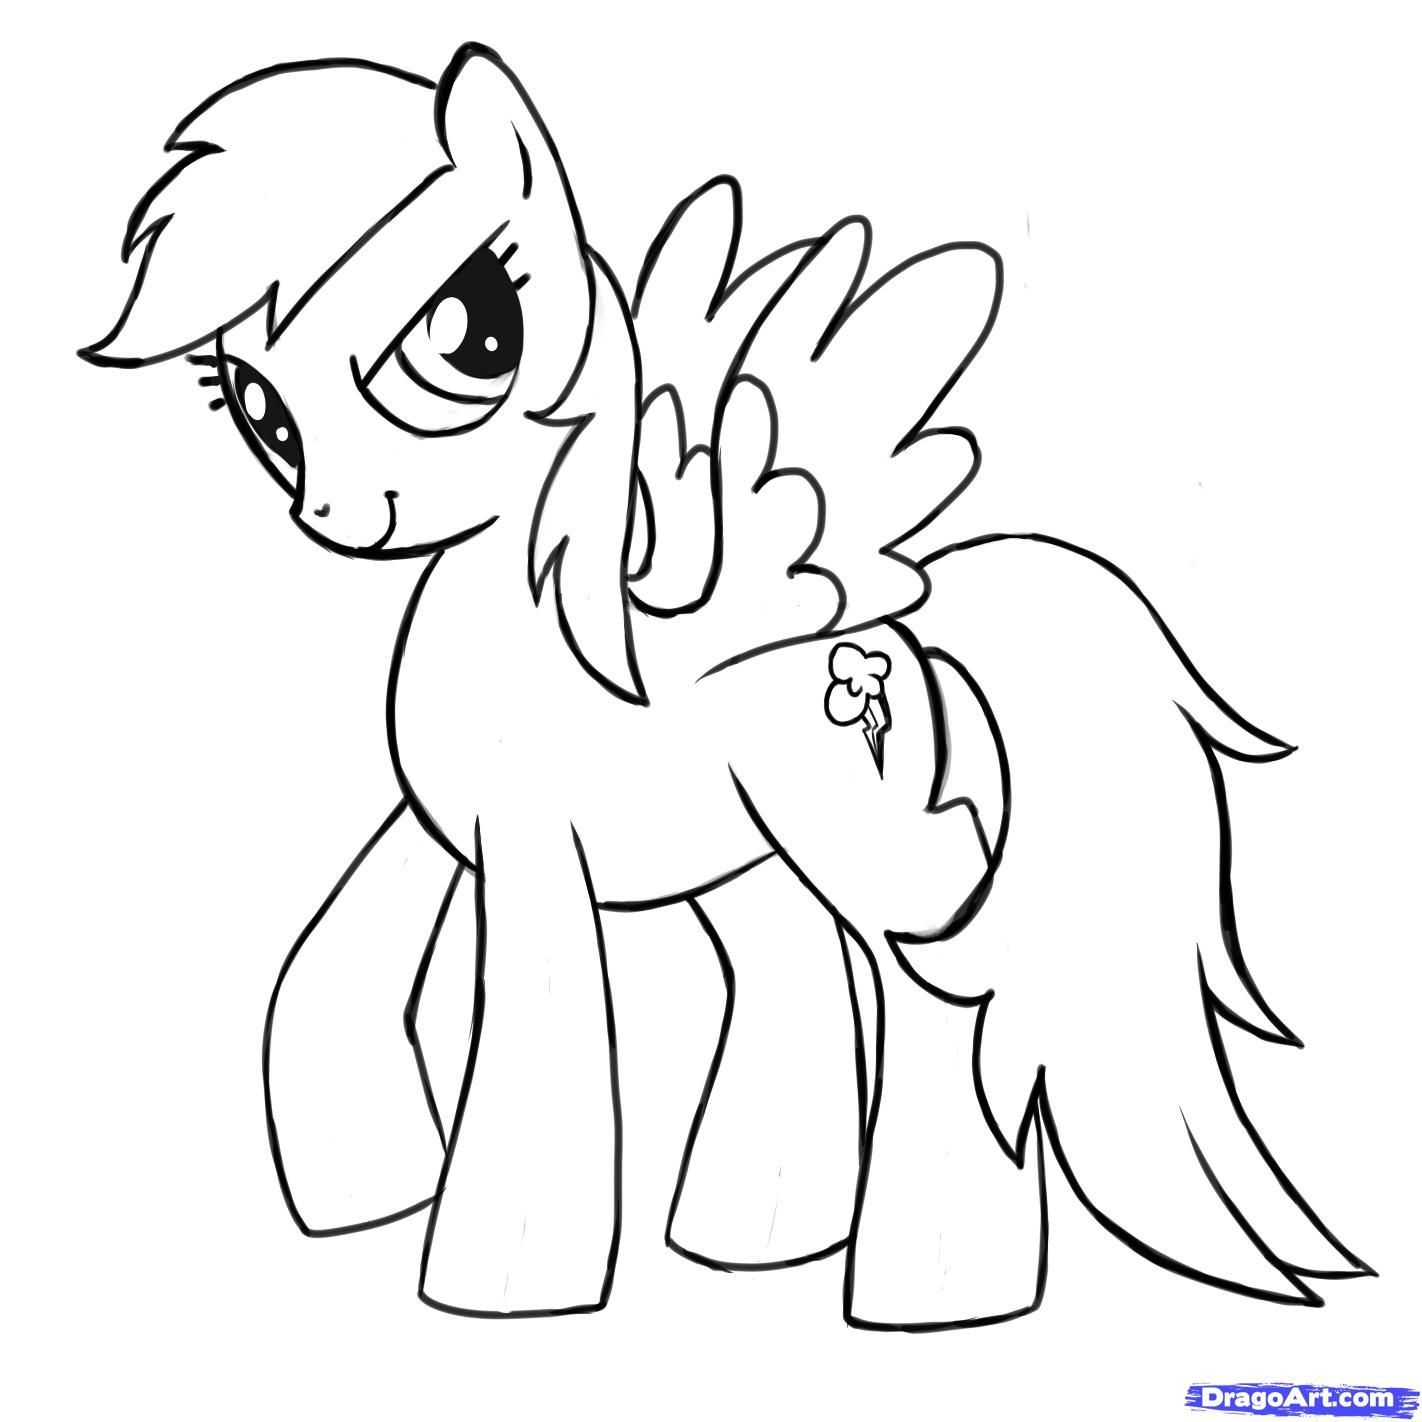 mlp printable coloring pages | How to Draw Rainbow Dash, My Little ...